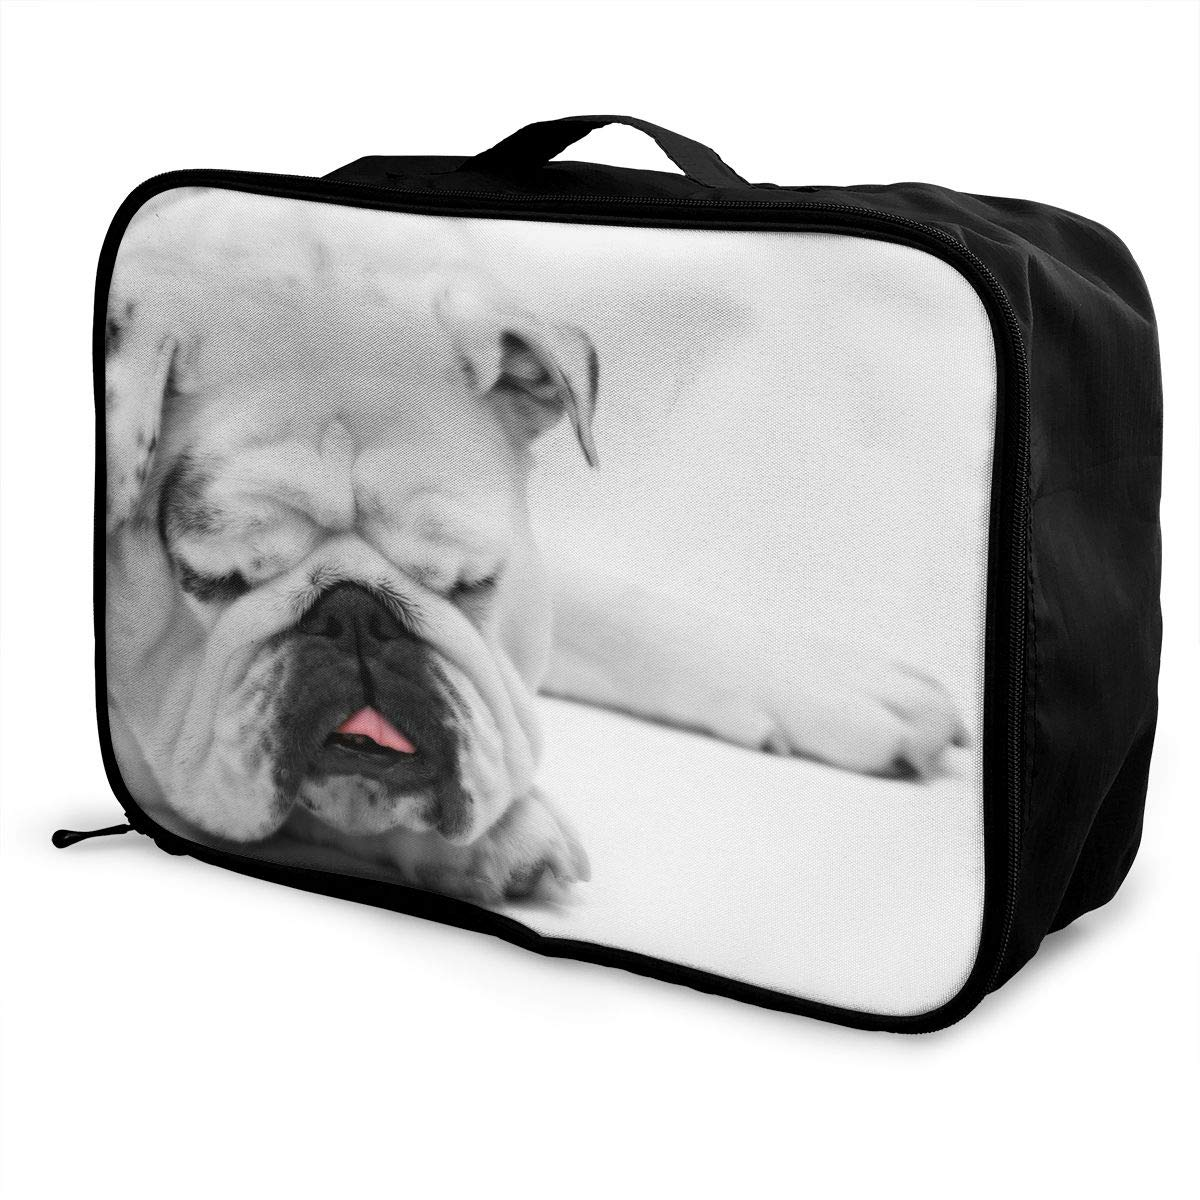 Travel Luggage Duffle Bag Lightweight Portable Handbag Cute Dog Print Large Capacity Waterproof Foldable Storage Tote